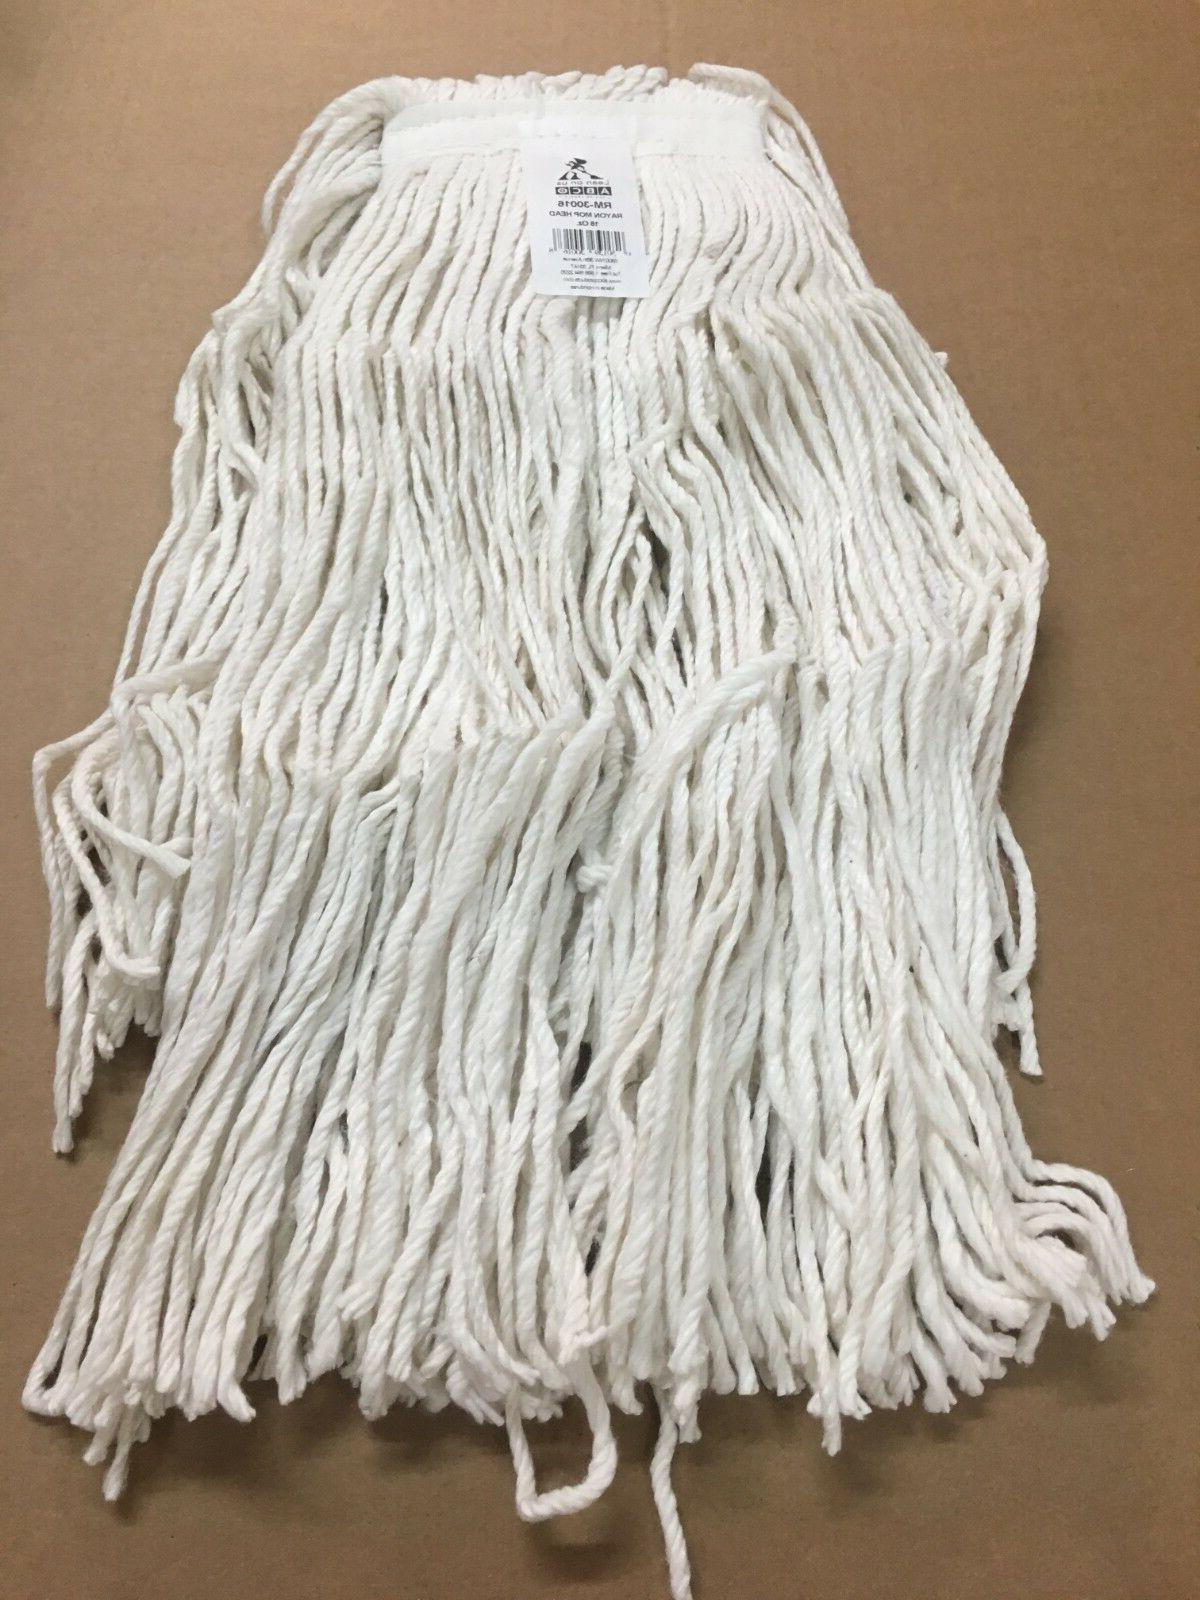 16 oz rayon mop heads brand new